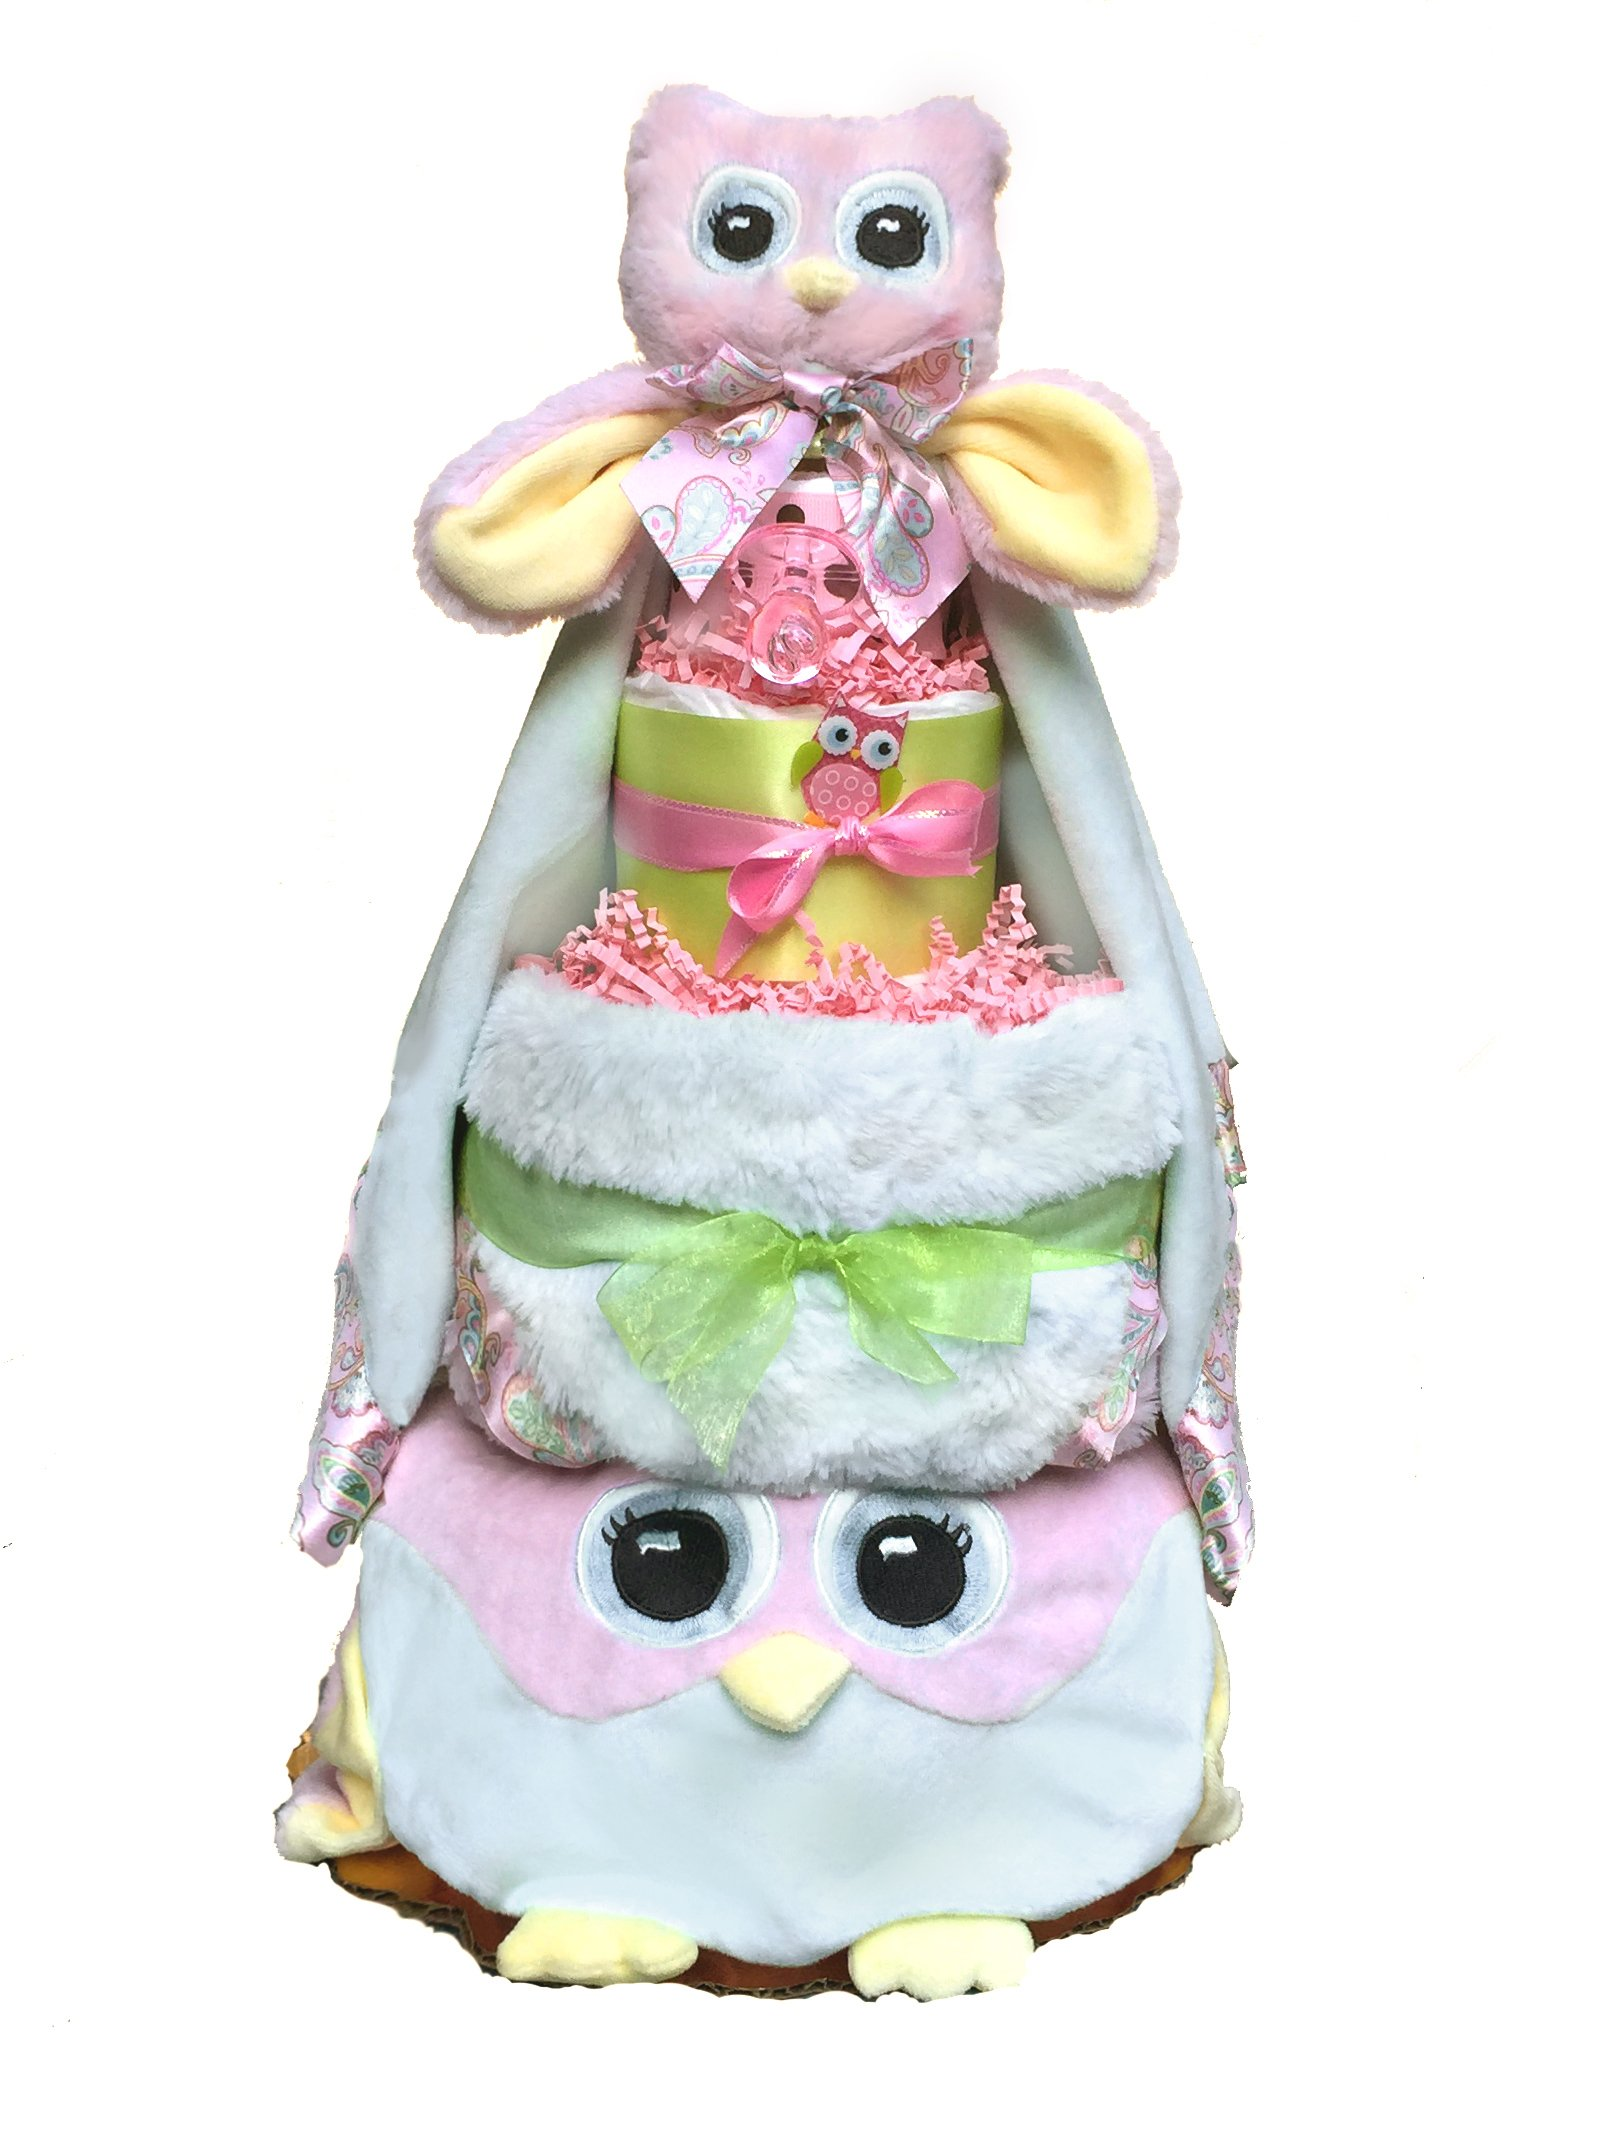 Owl Diaper Cake-cute Baby Girl Gift for Baby Shower-Pink Diaper Cake Makes a Perfect Baby Gift Basket